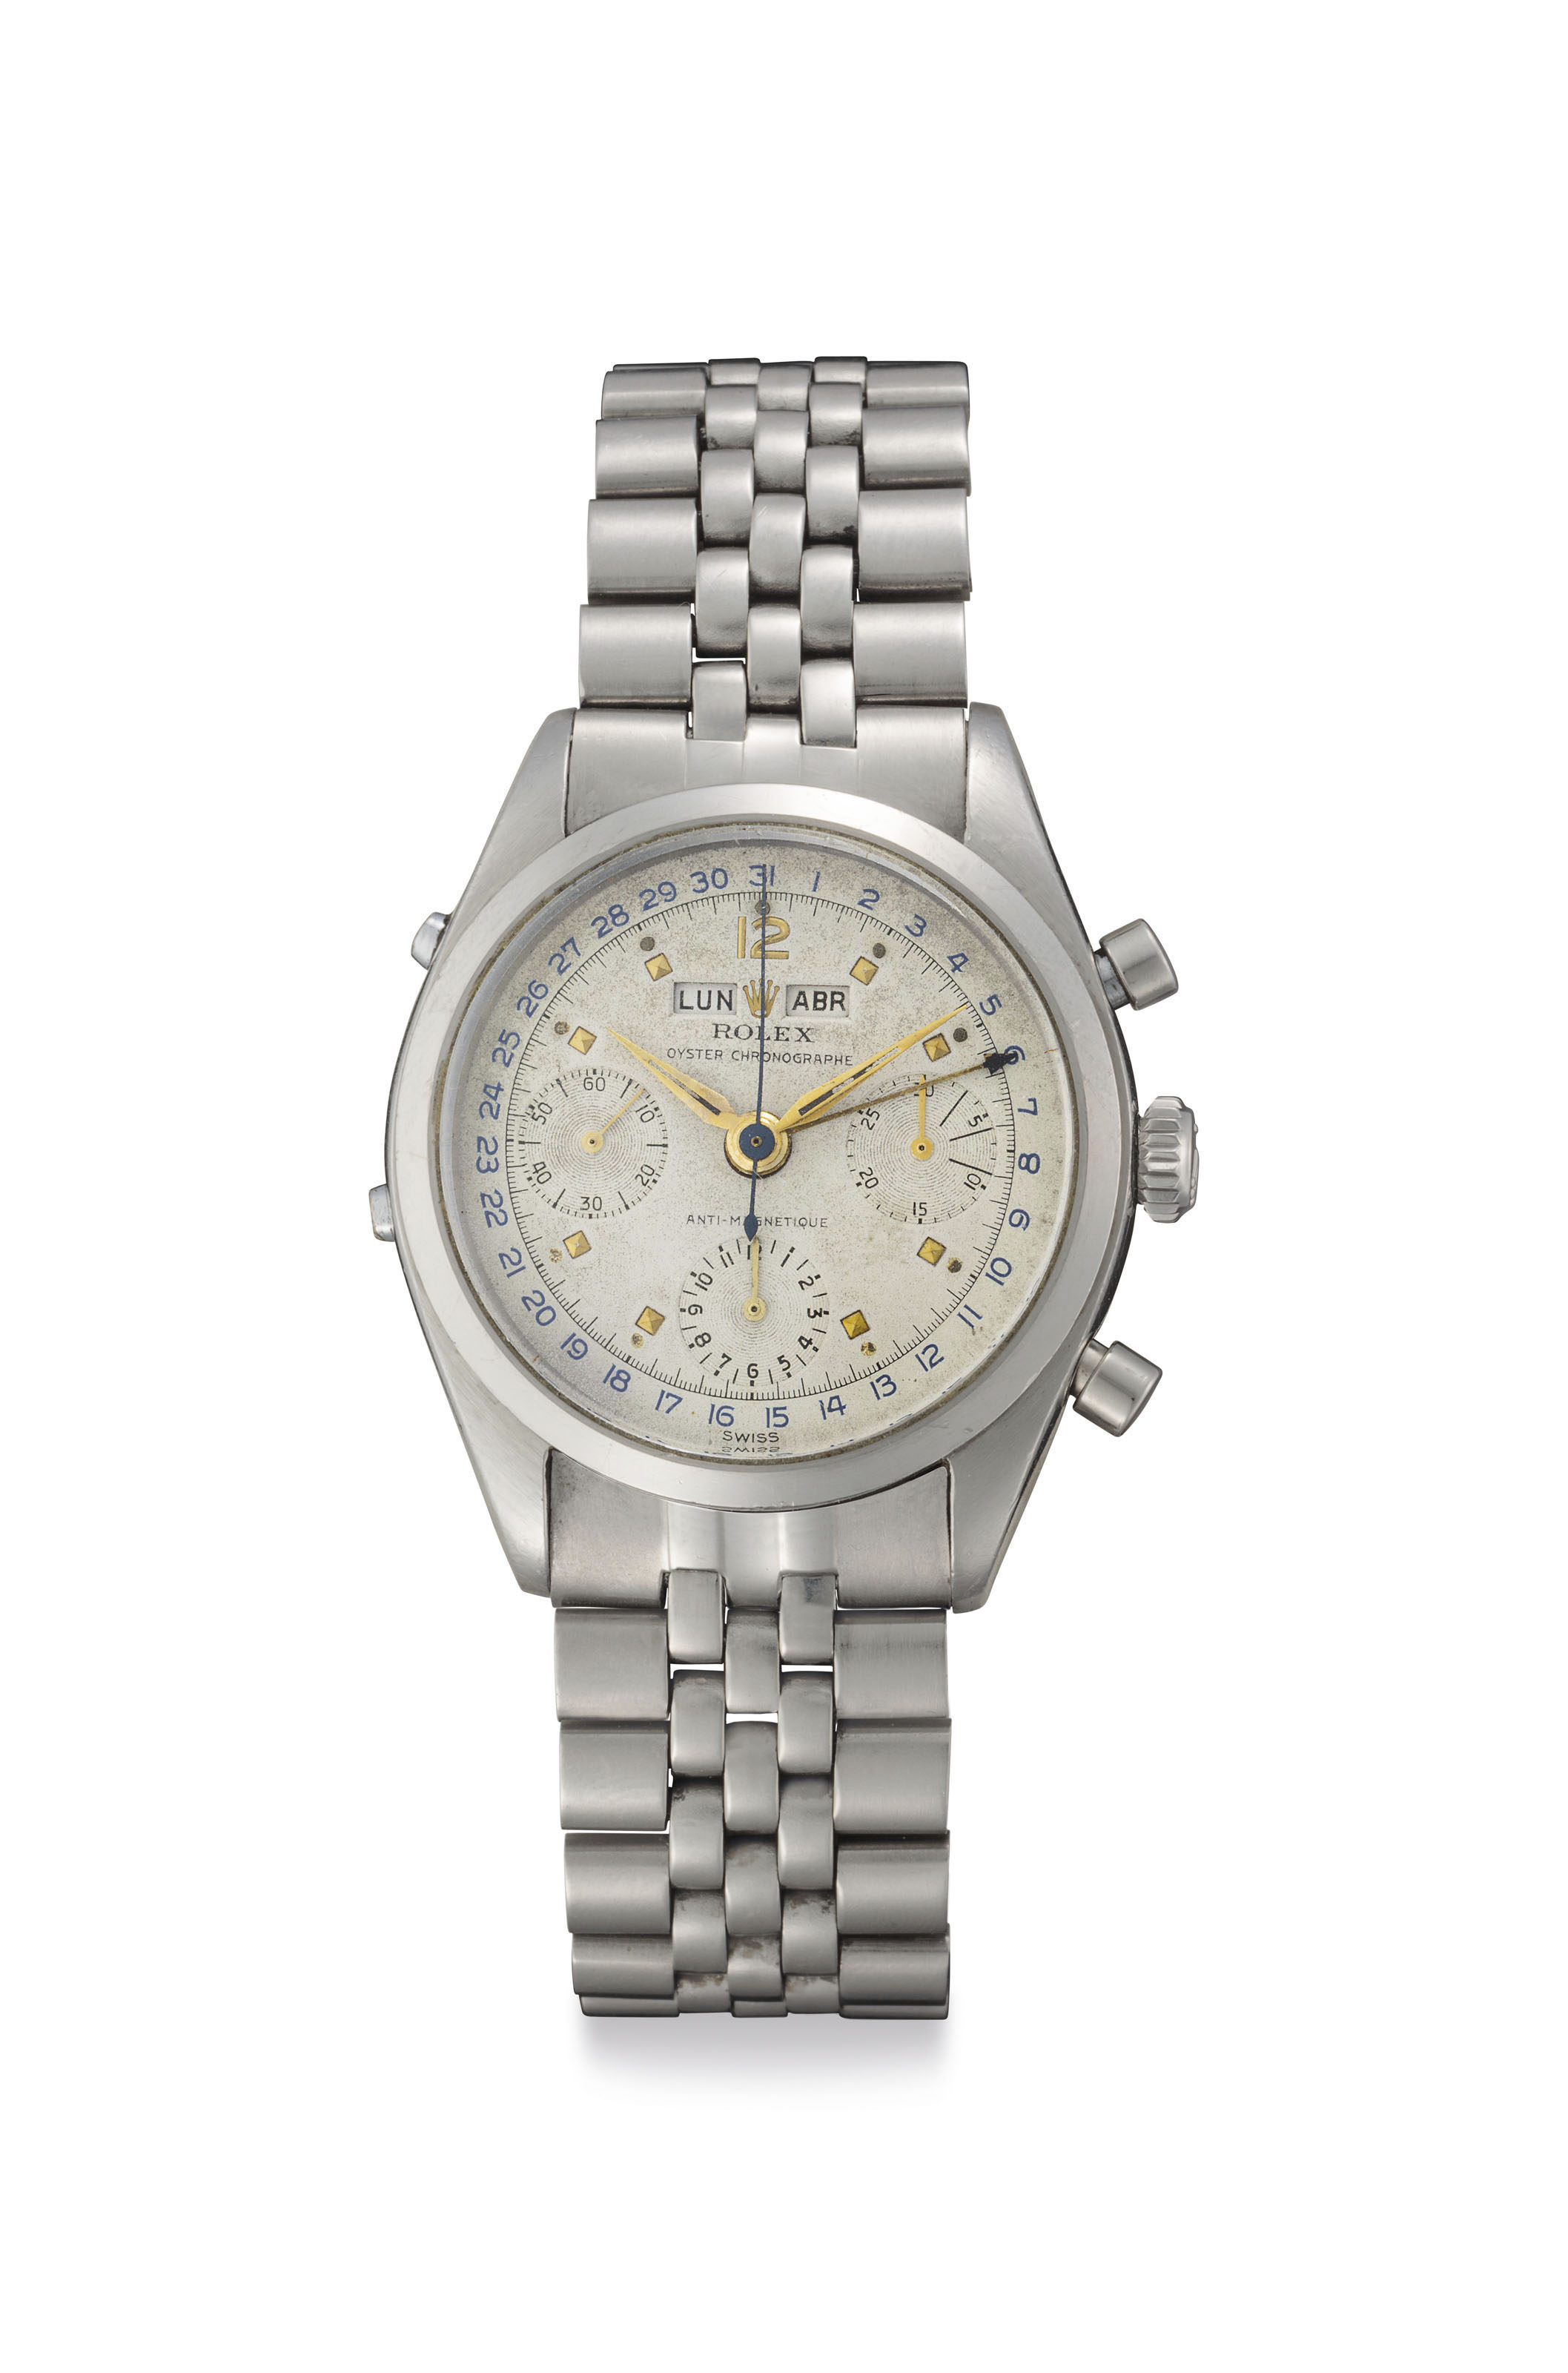 Rolex. A Very Fine and Rare Stainless Steel Triple Calendar Chronograph Wristwatch with Bracelet